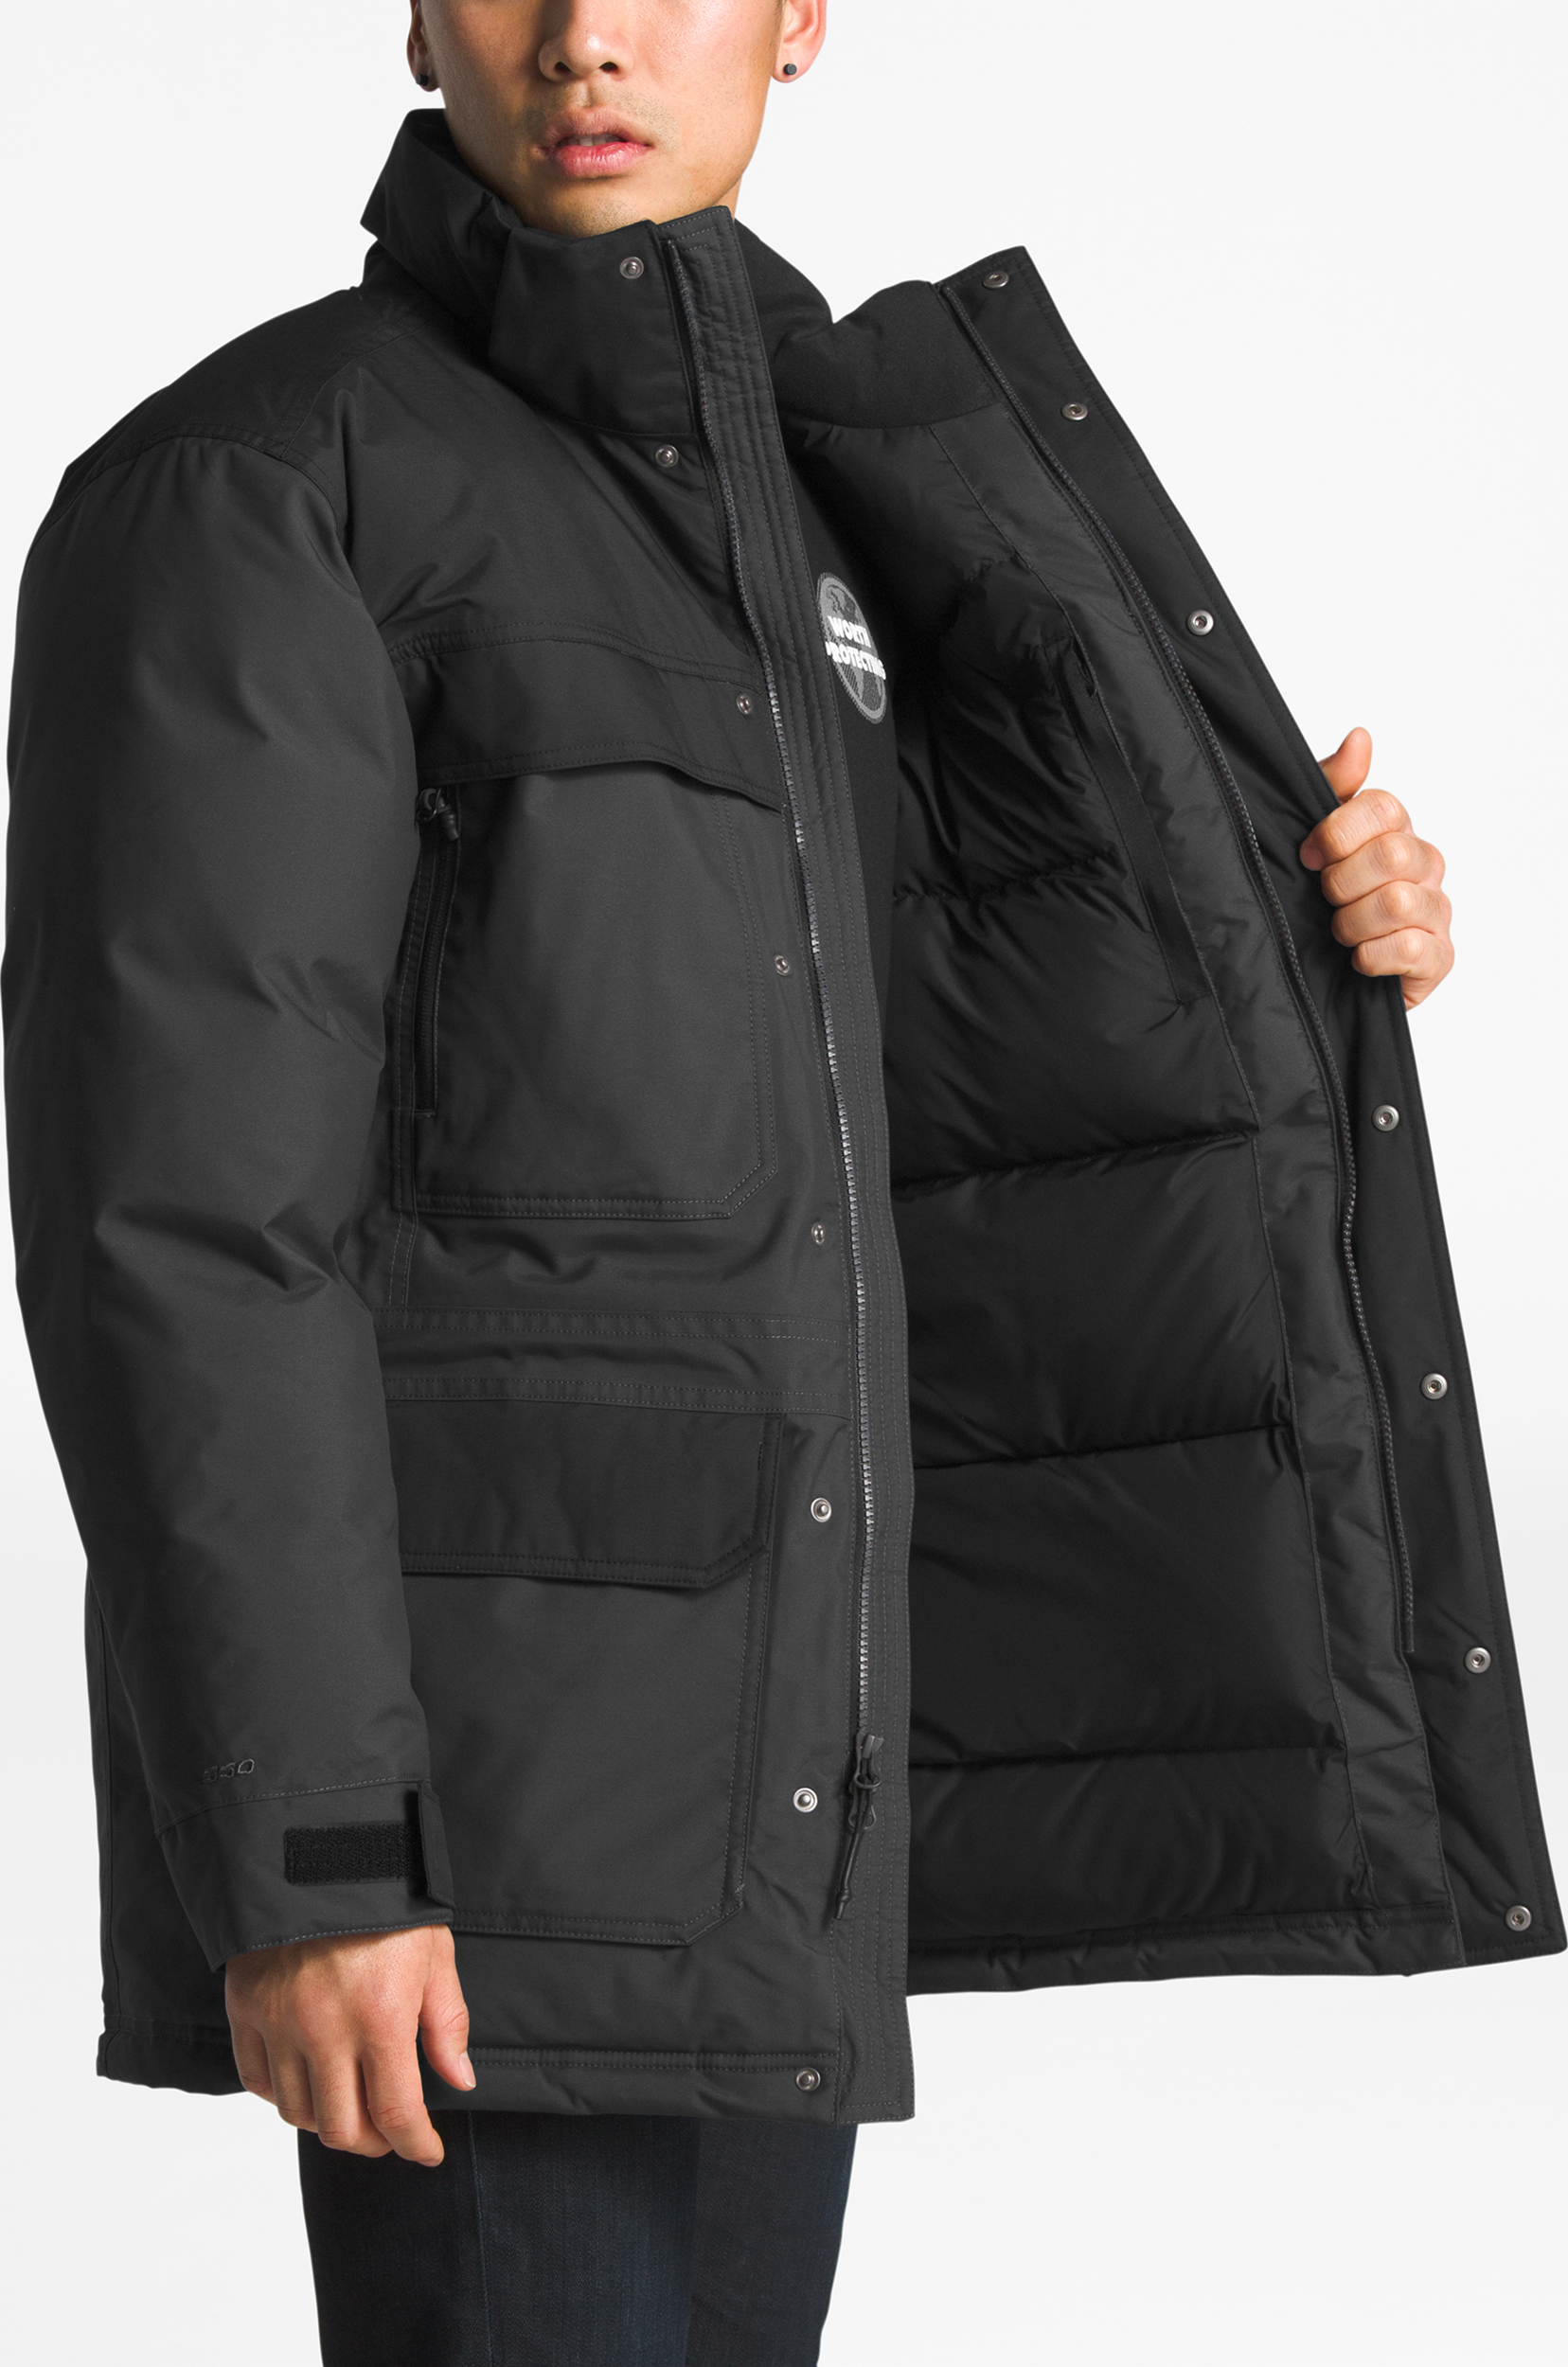 dcf61ccdb2f1 The North Face McMurdo Parka - Men s